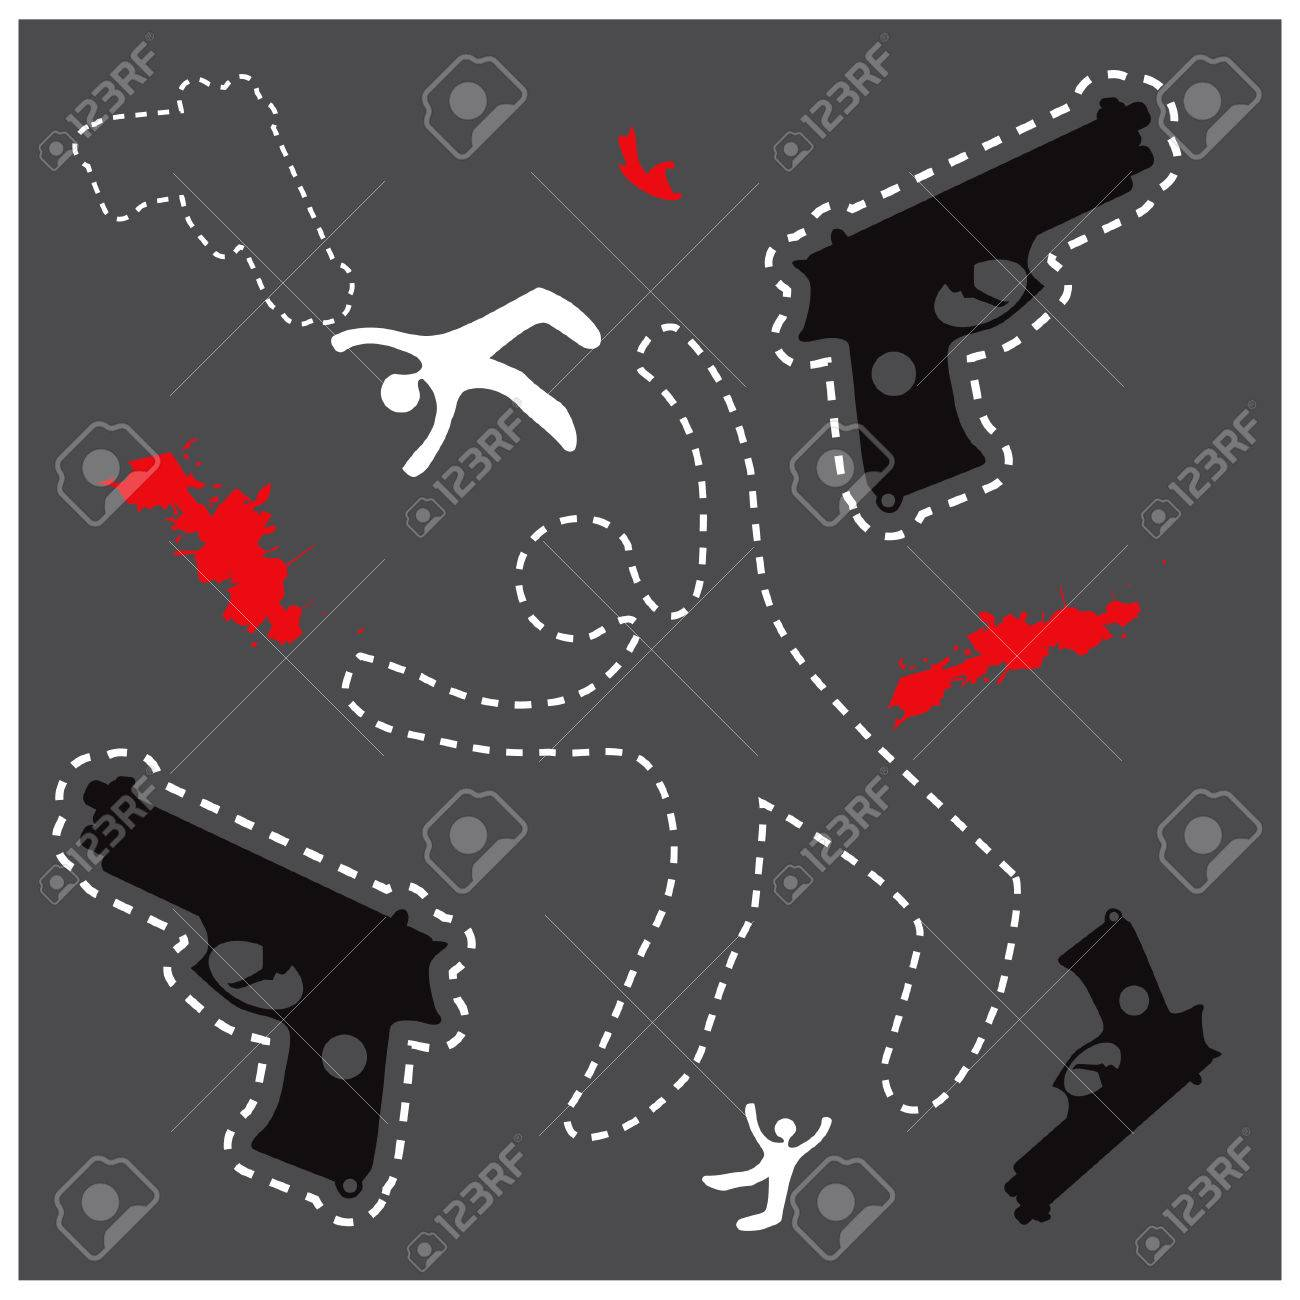 silhouette of the dead man and gun on the ground vector background dead body otline